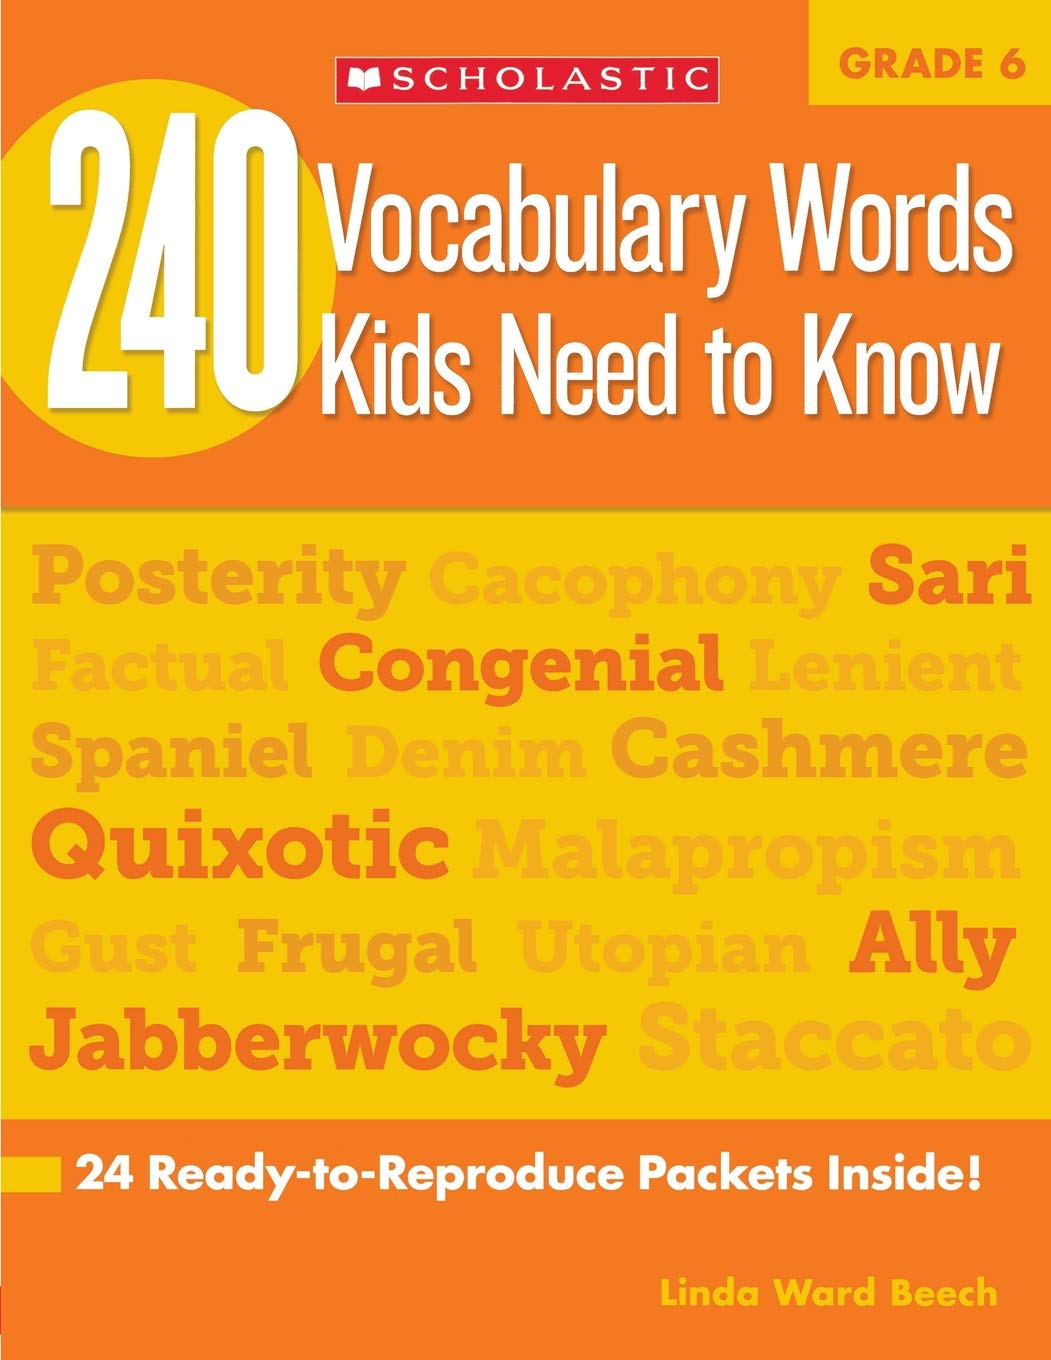 Amazon.com: 240 Vocabulary Words Kids Need to Know: Grade 6: 24  Ready-to-Reproduce Packets Inside! (9780545468664): Linda Beech: Books